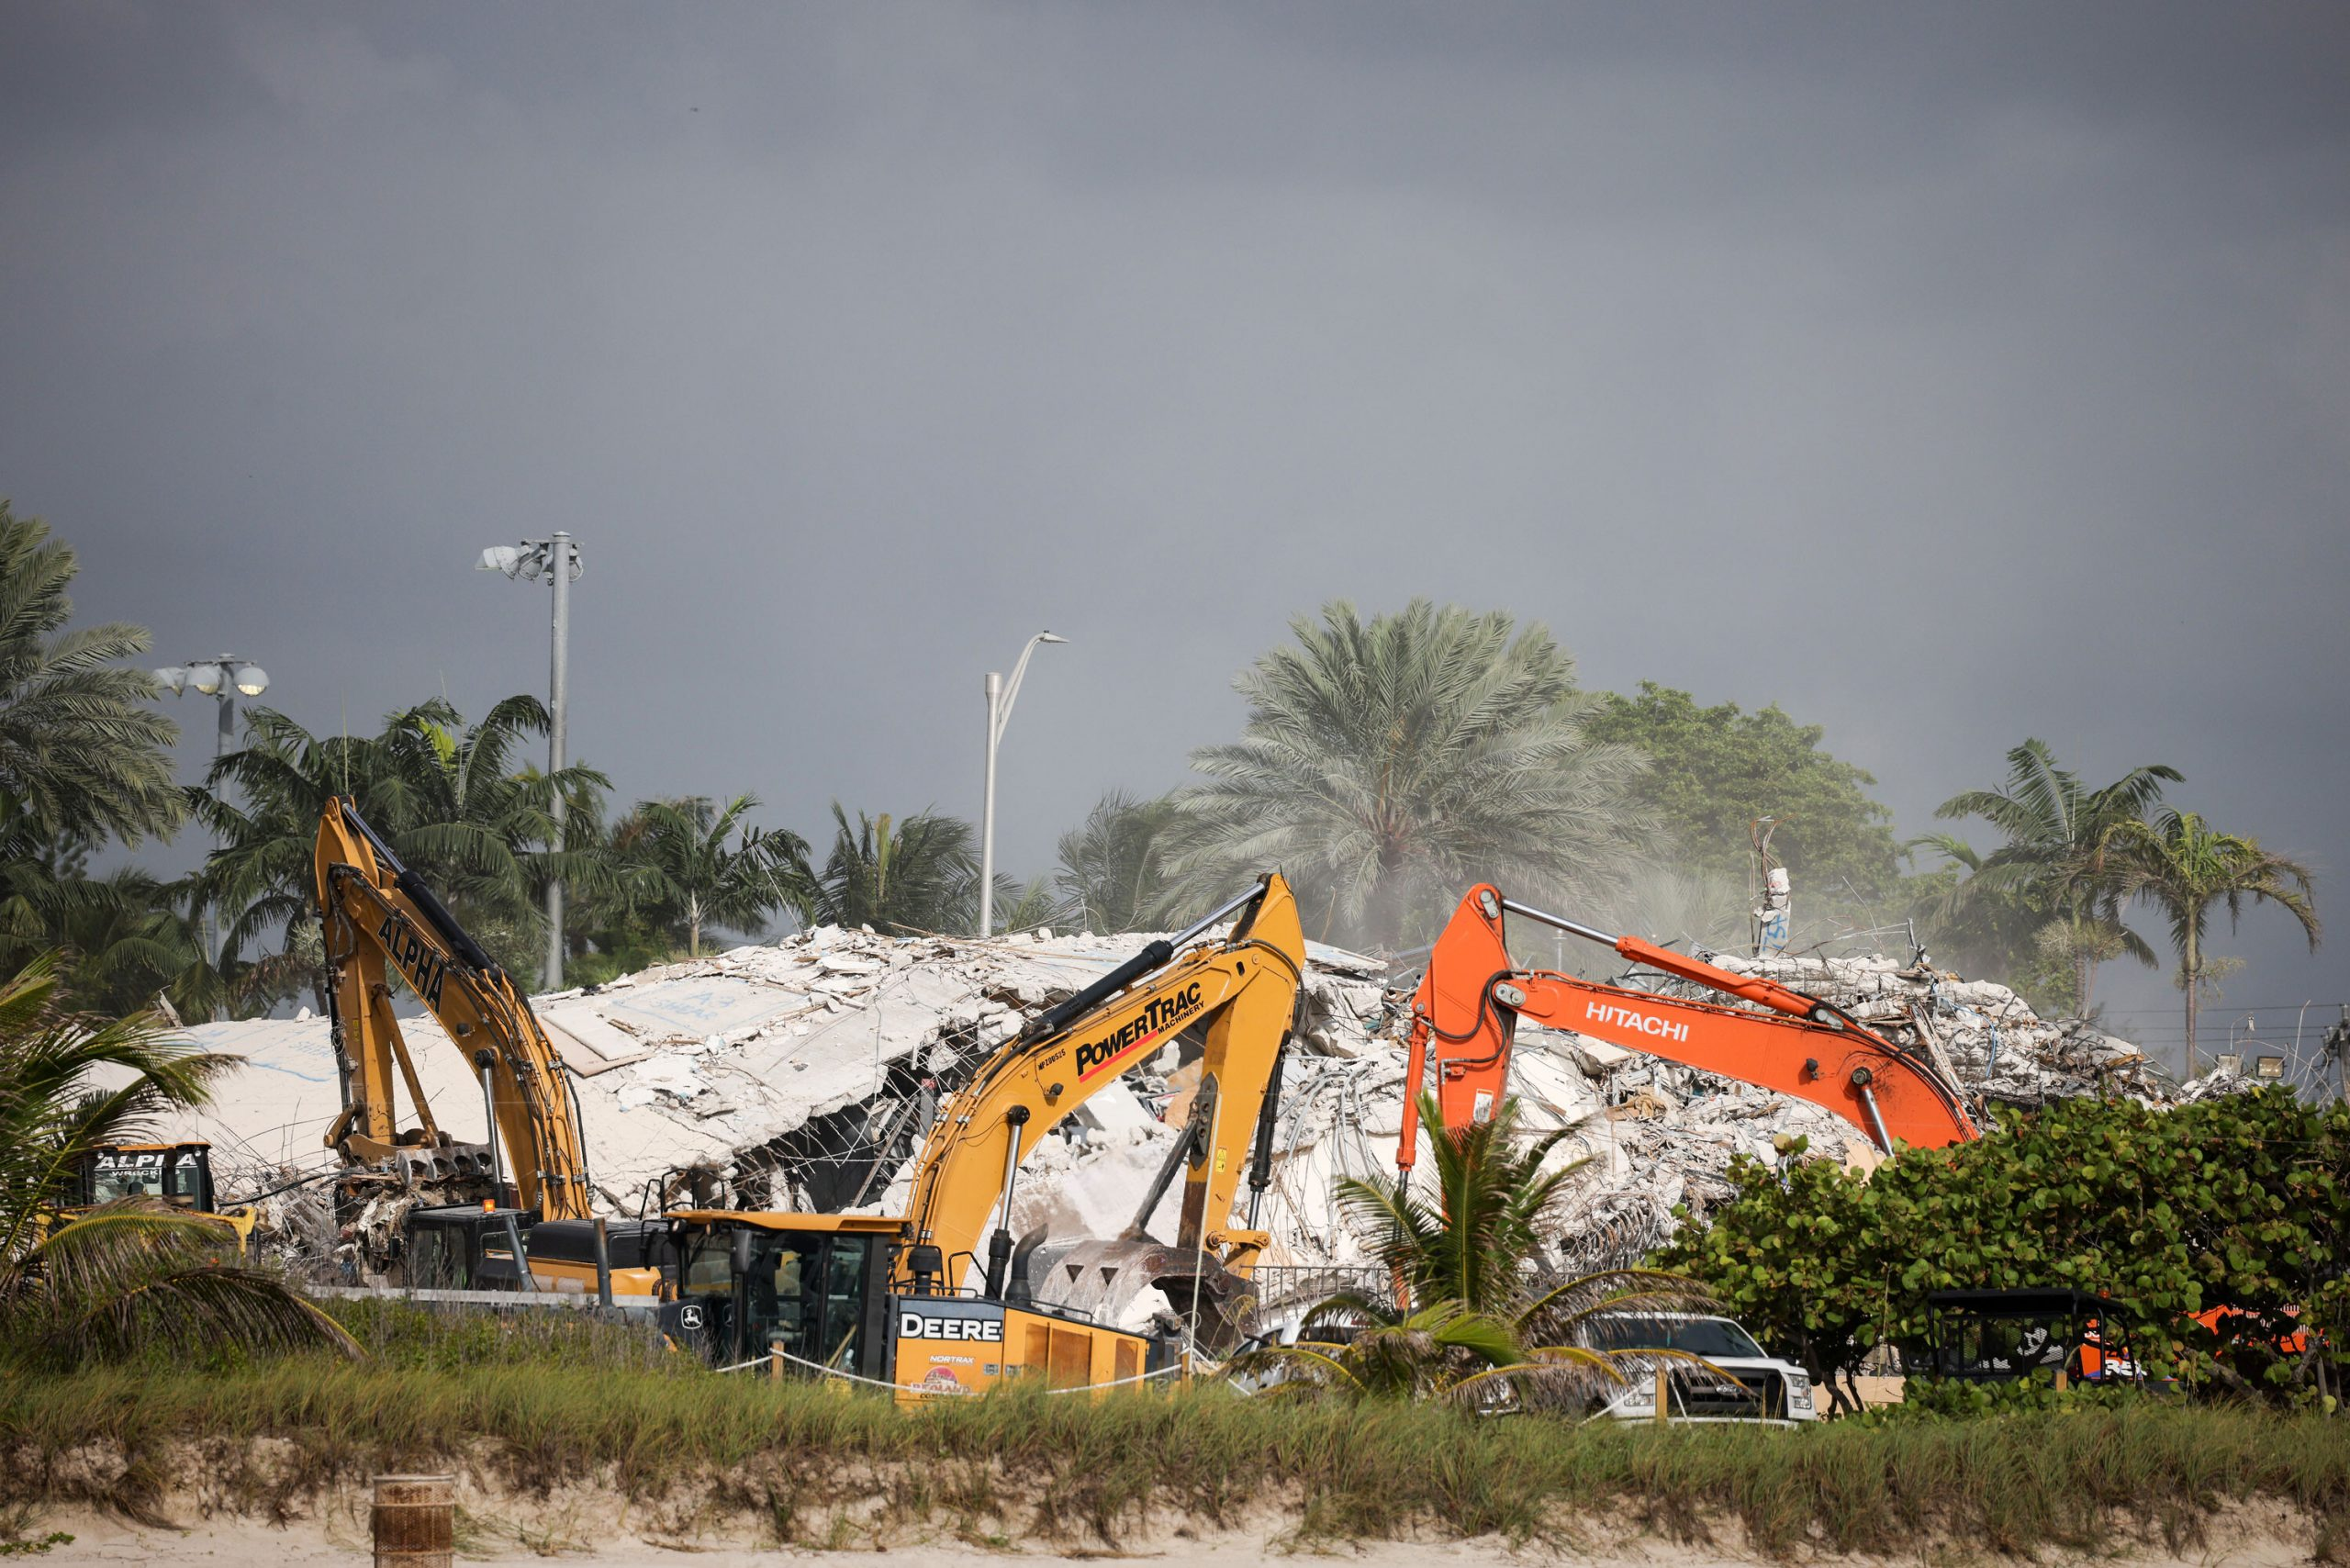 <i>Anna Moneymaker/Getty Images</i><br/>Rescue workers use excavators to dig through the rubble of the collapsed 12-story Champlain Towers South condo building on July 9 in Surfside